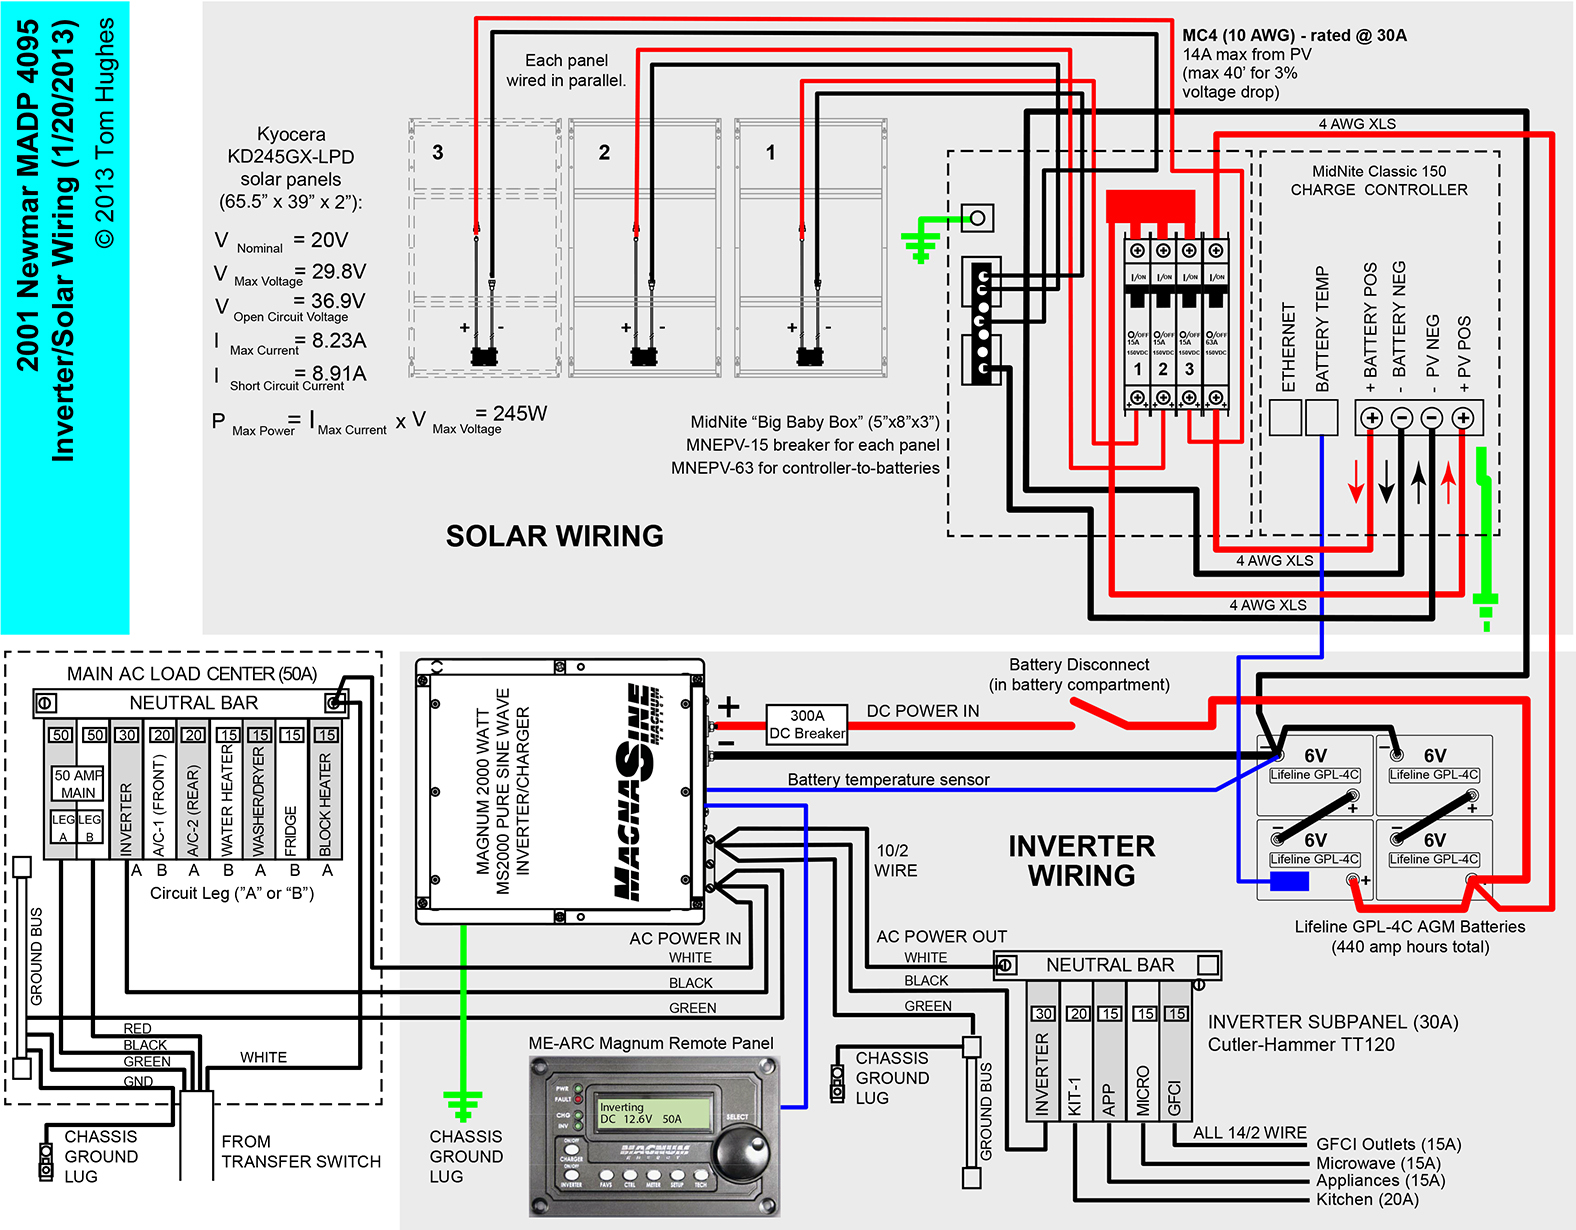 ms2000_newmar_inverter_wiring_01_20_2013 rv inverter diagram rv inverter transfer switch \u2022 wiring diagrams  at cos-gaming.co